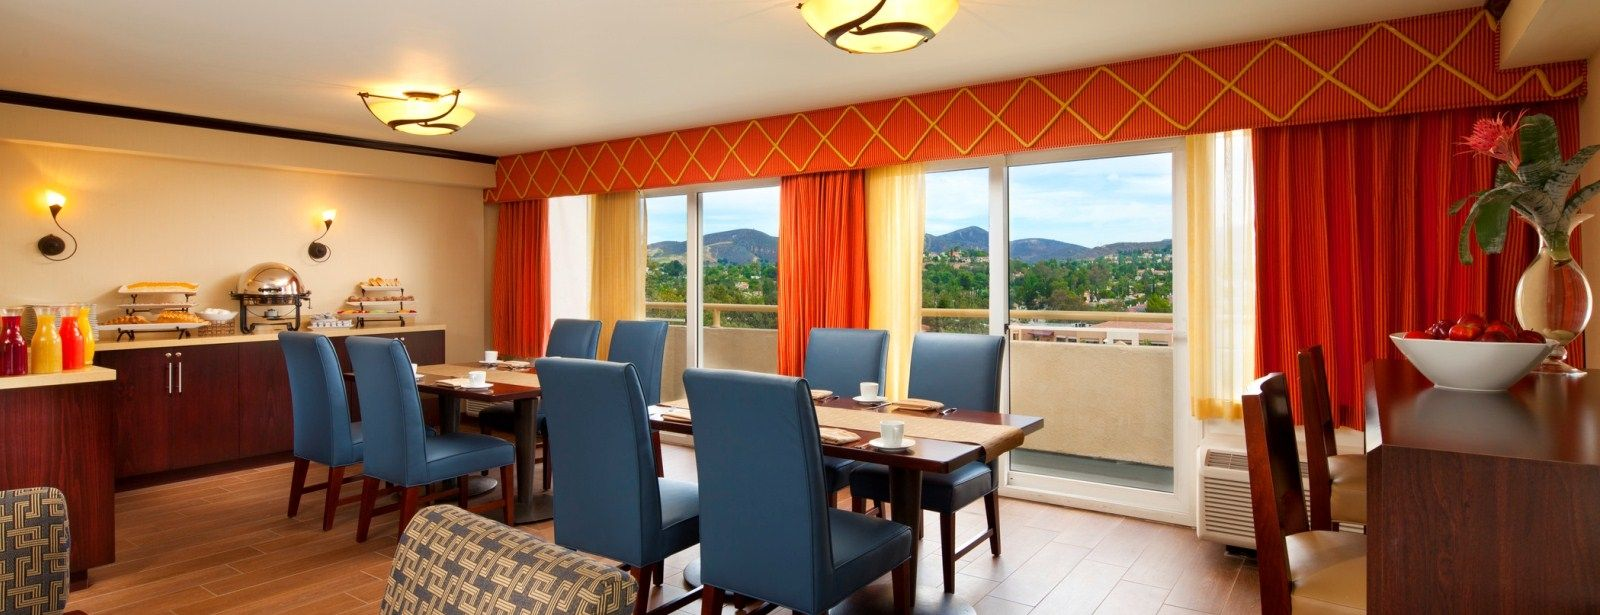 Sheraton Agoura Hills Hotel - Club Level Room